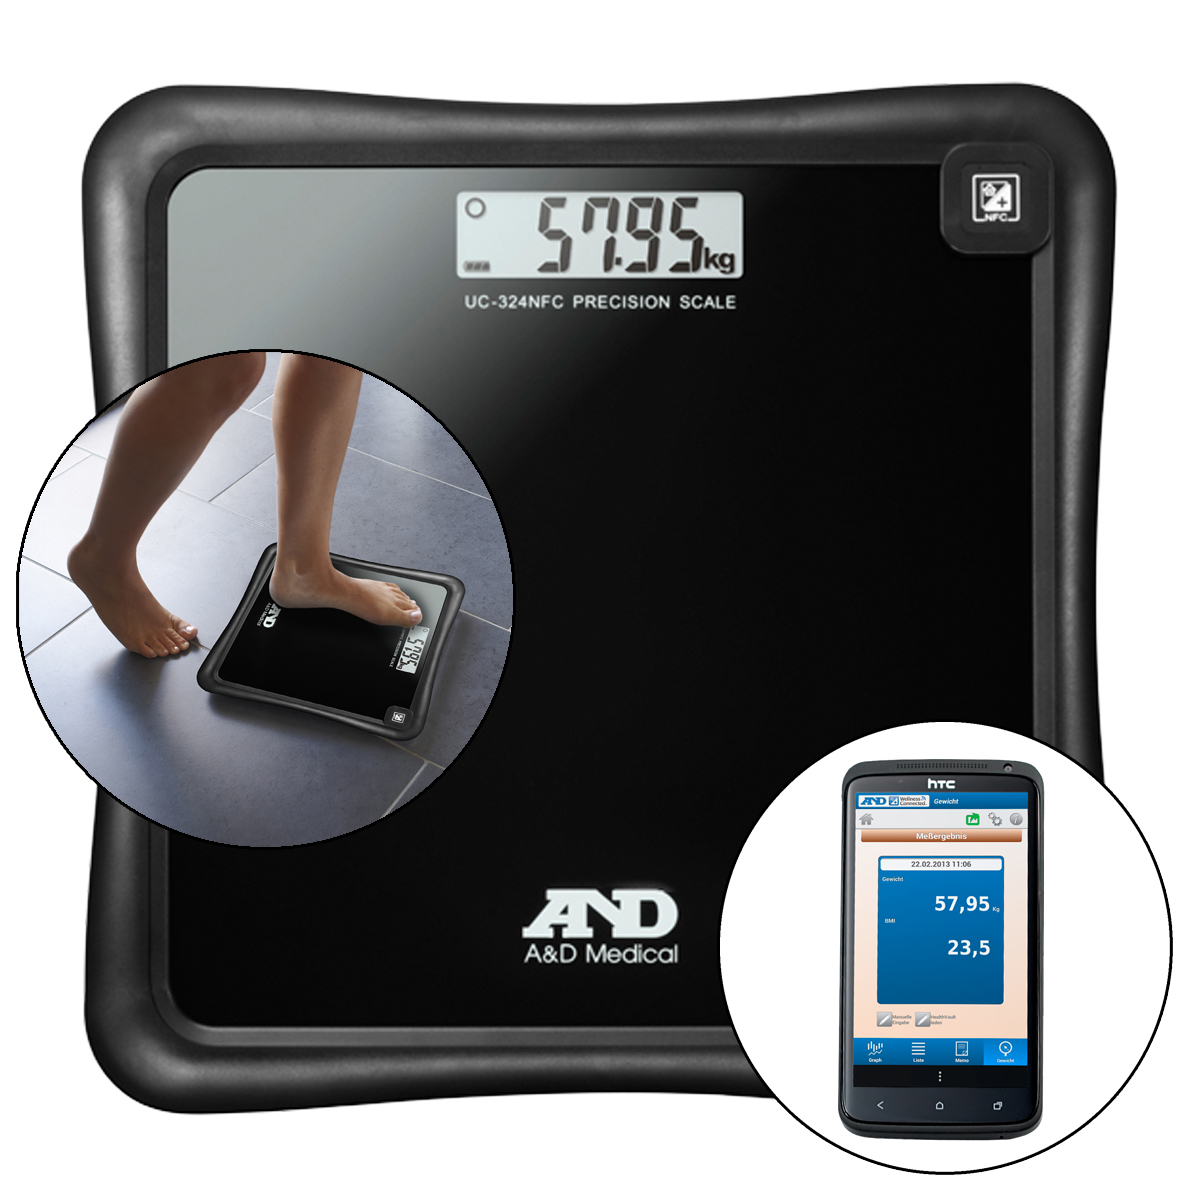 A&D Medical Precision Health Scale UC-324NFC with Wireless Smartphone Connection